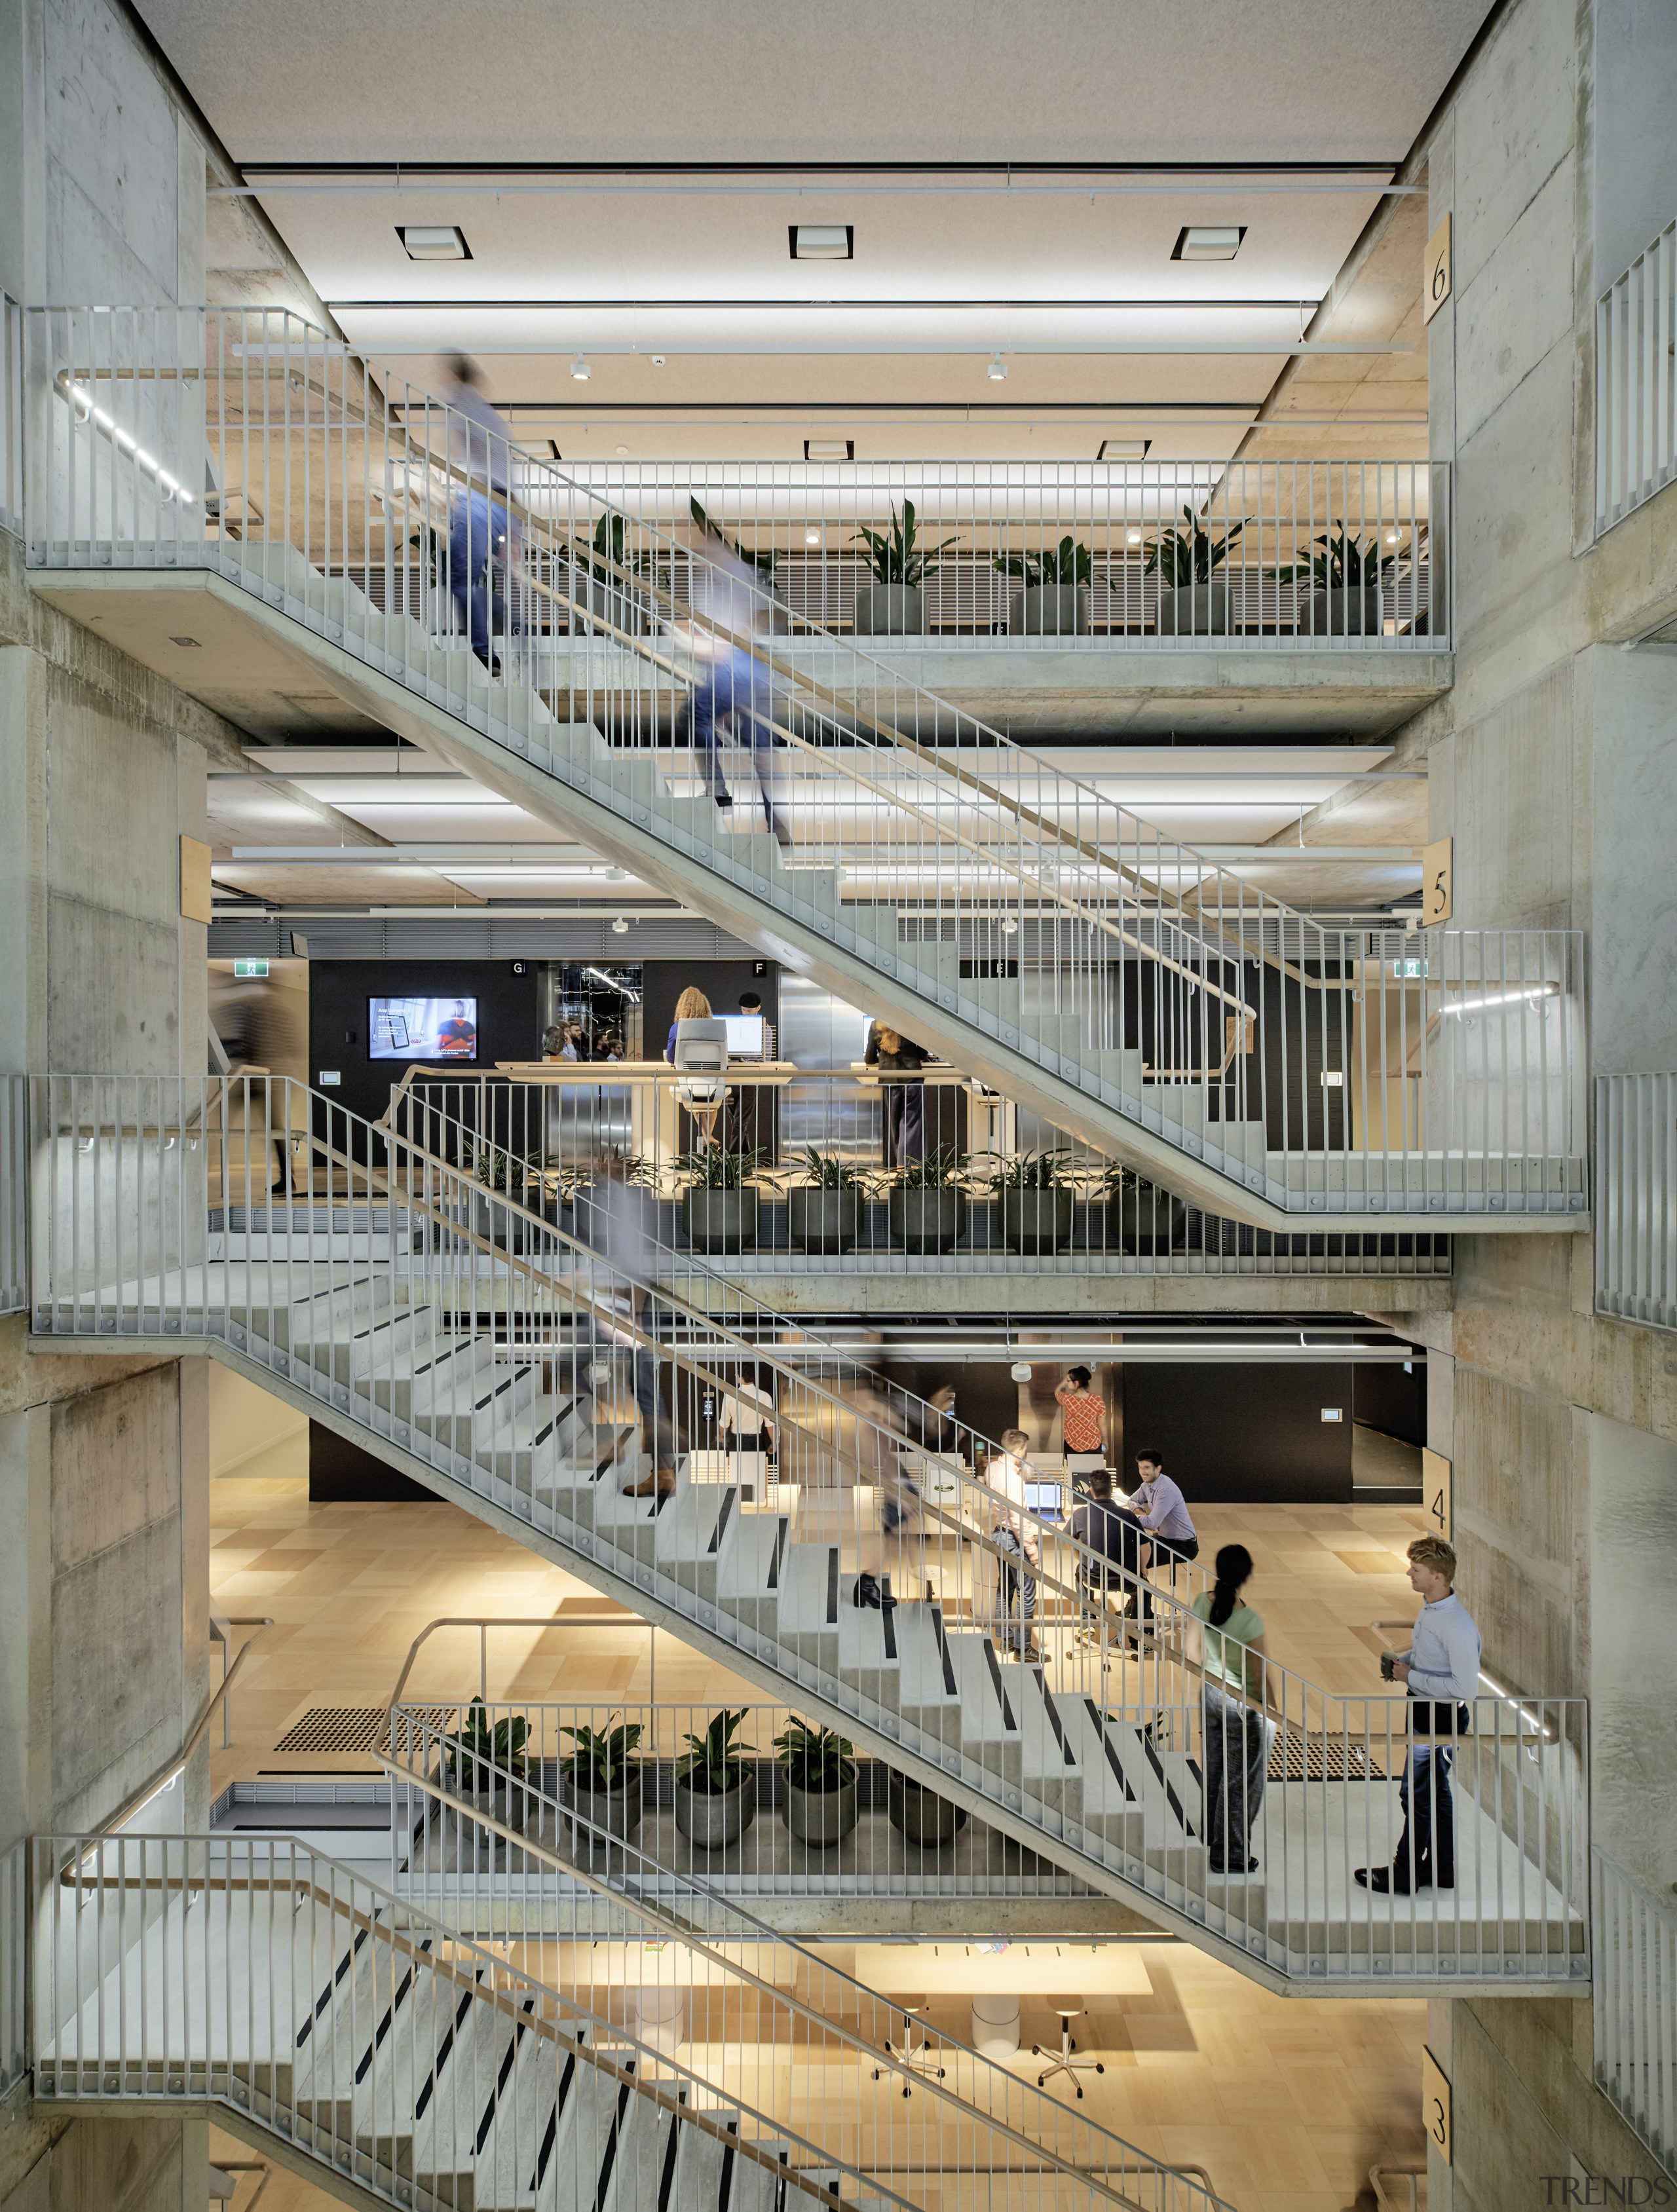 Positioning the circulation staircase as a visual feature architecture, building, circulation staircase, Arup offices, open plan office floors